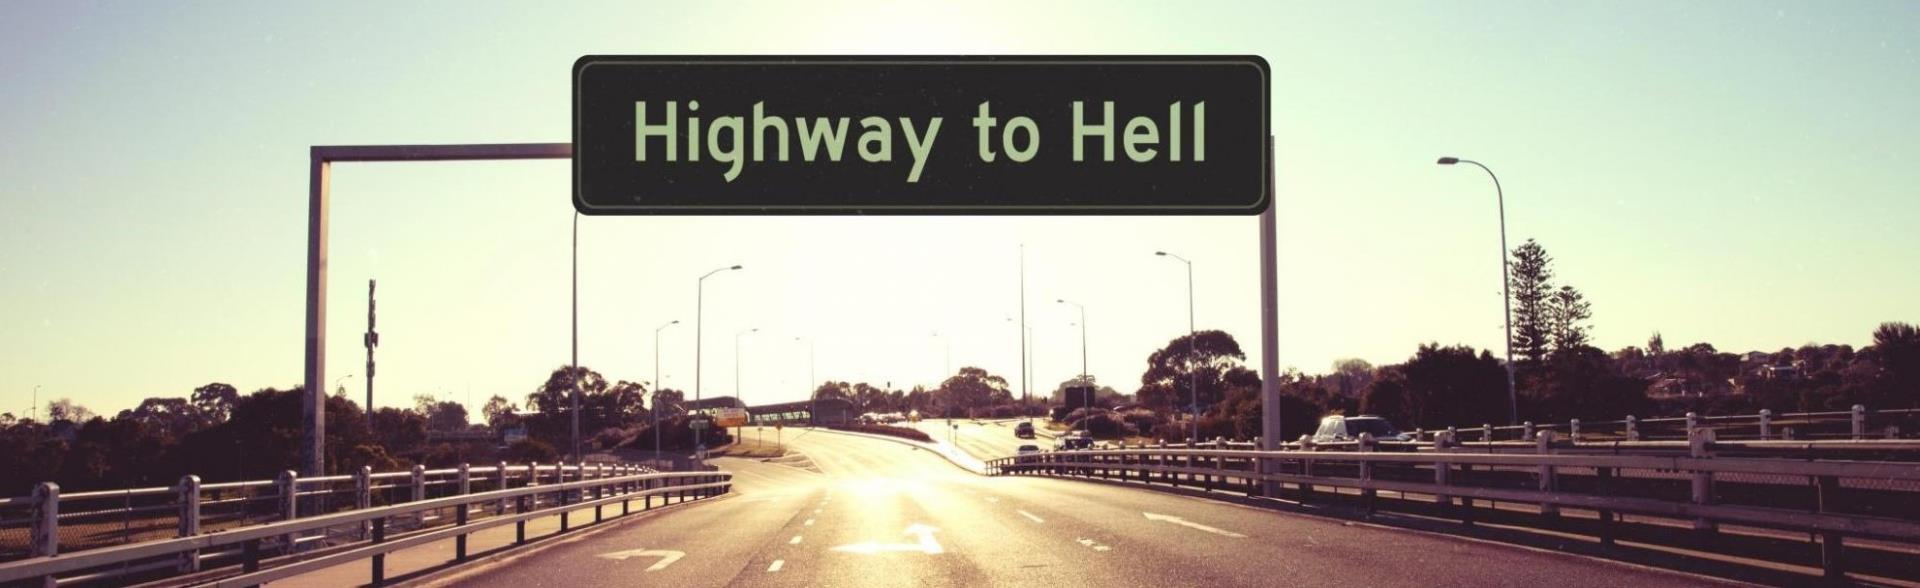 Banner - Highway to Hell - Perth Festival 2020 » Town of East